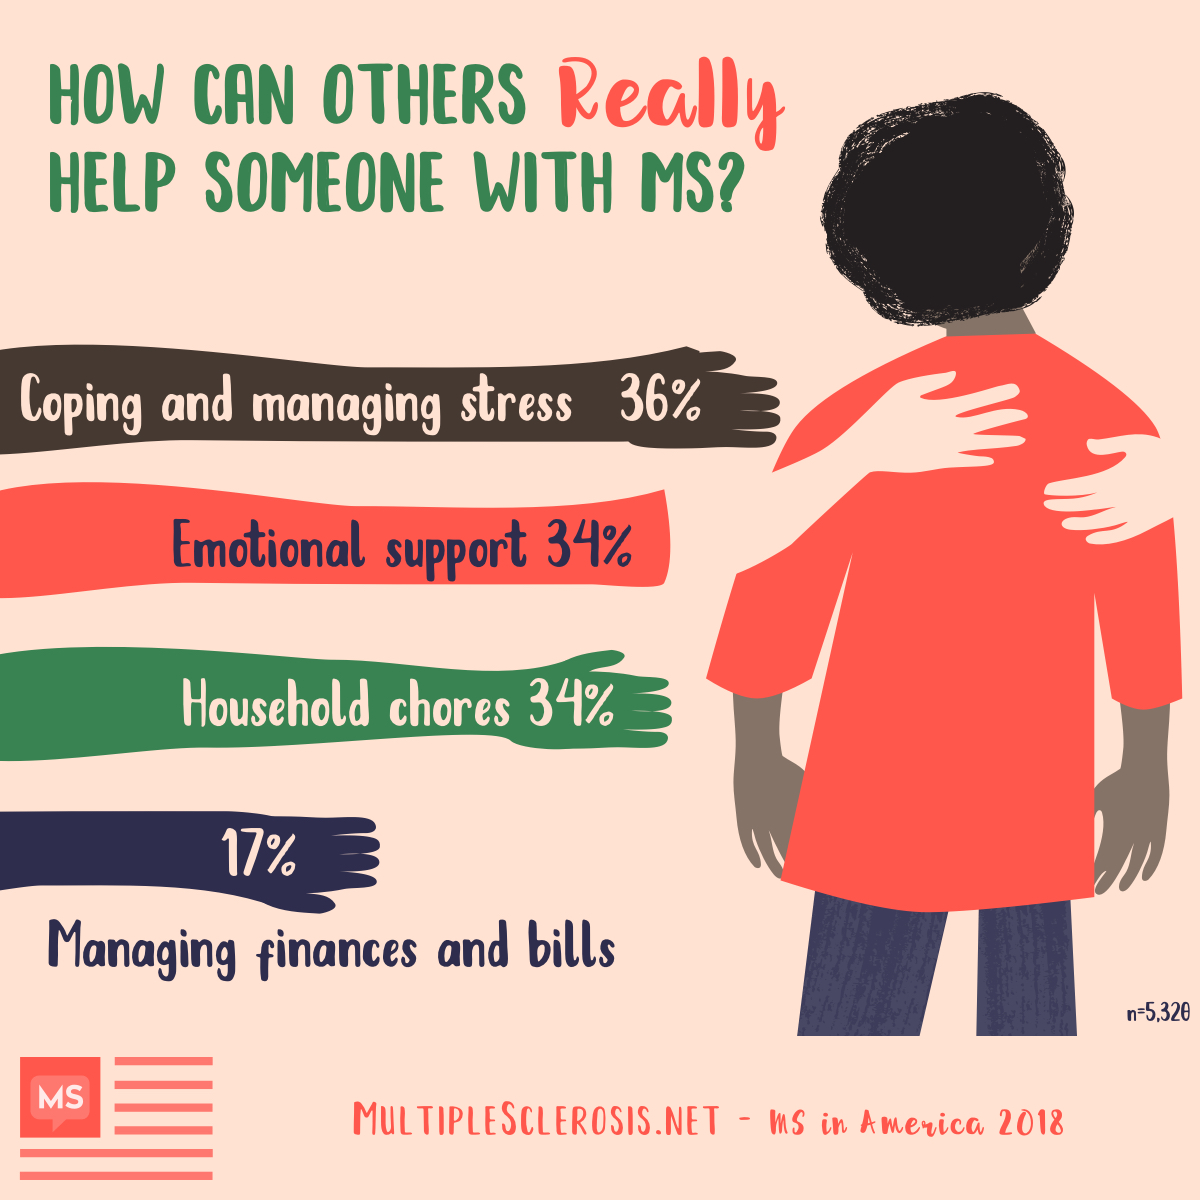 How can others REALLY help someone with MS? 36% need help coping with their MS and managing stress, 34% need emotional support, 34% need help with household chores, 17% need help managing finances and bills, 15% need help with meals and food preparation